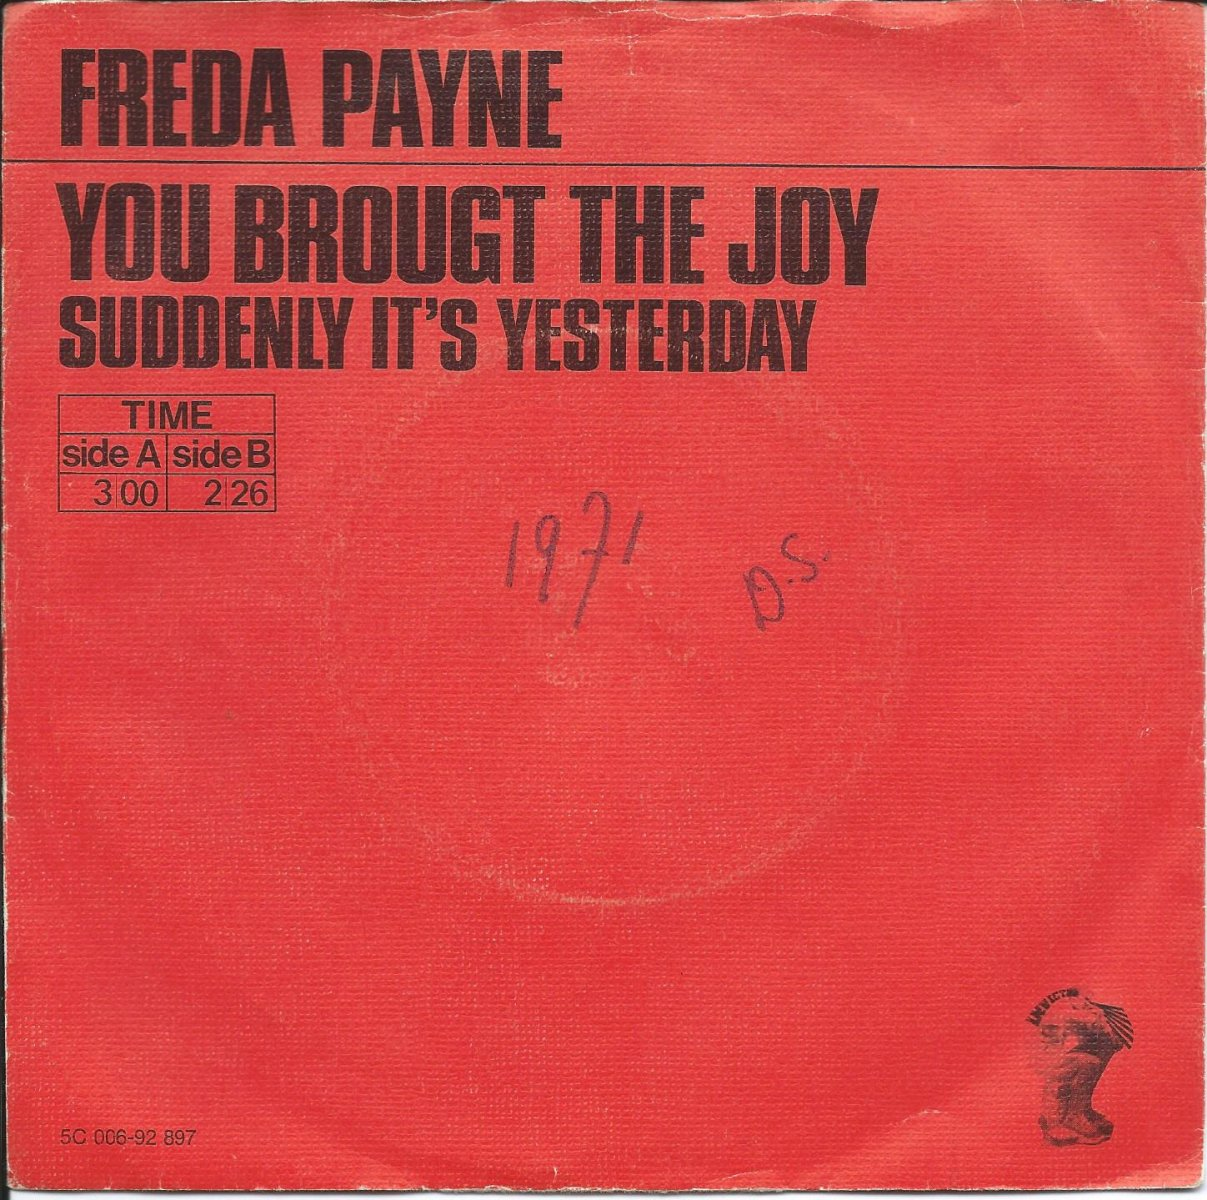 FREDA PAYNE ‎/ YOU BROUGHT THE JOY / SUDDENLY IT'S YESTERDAY (7